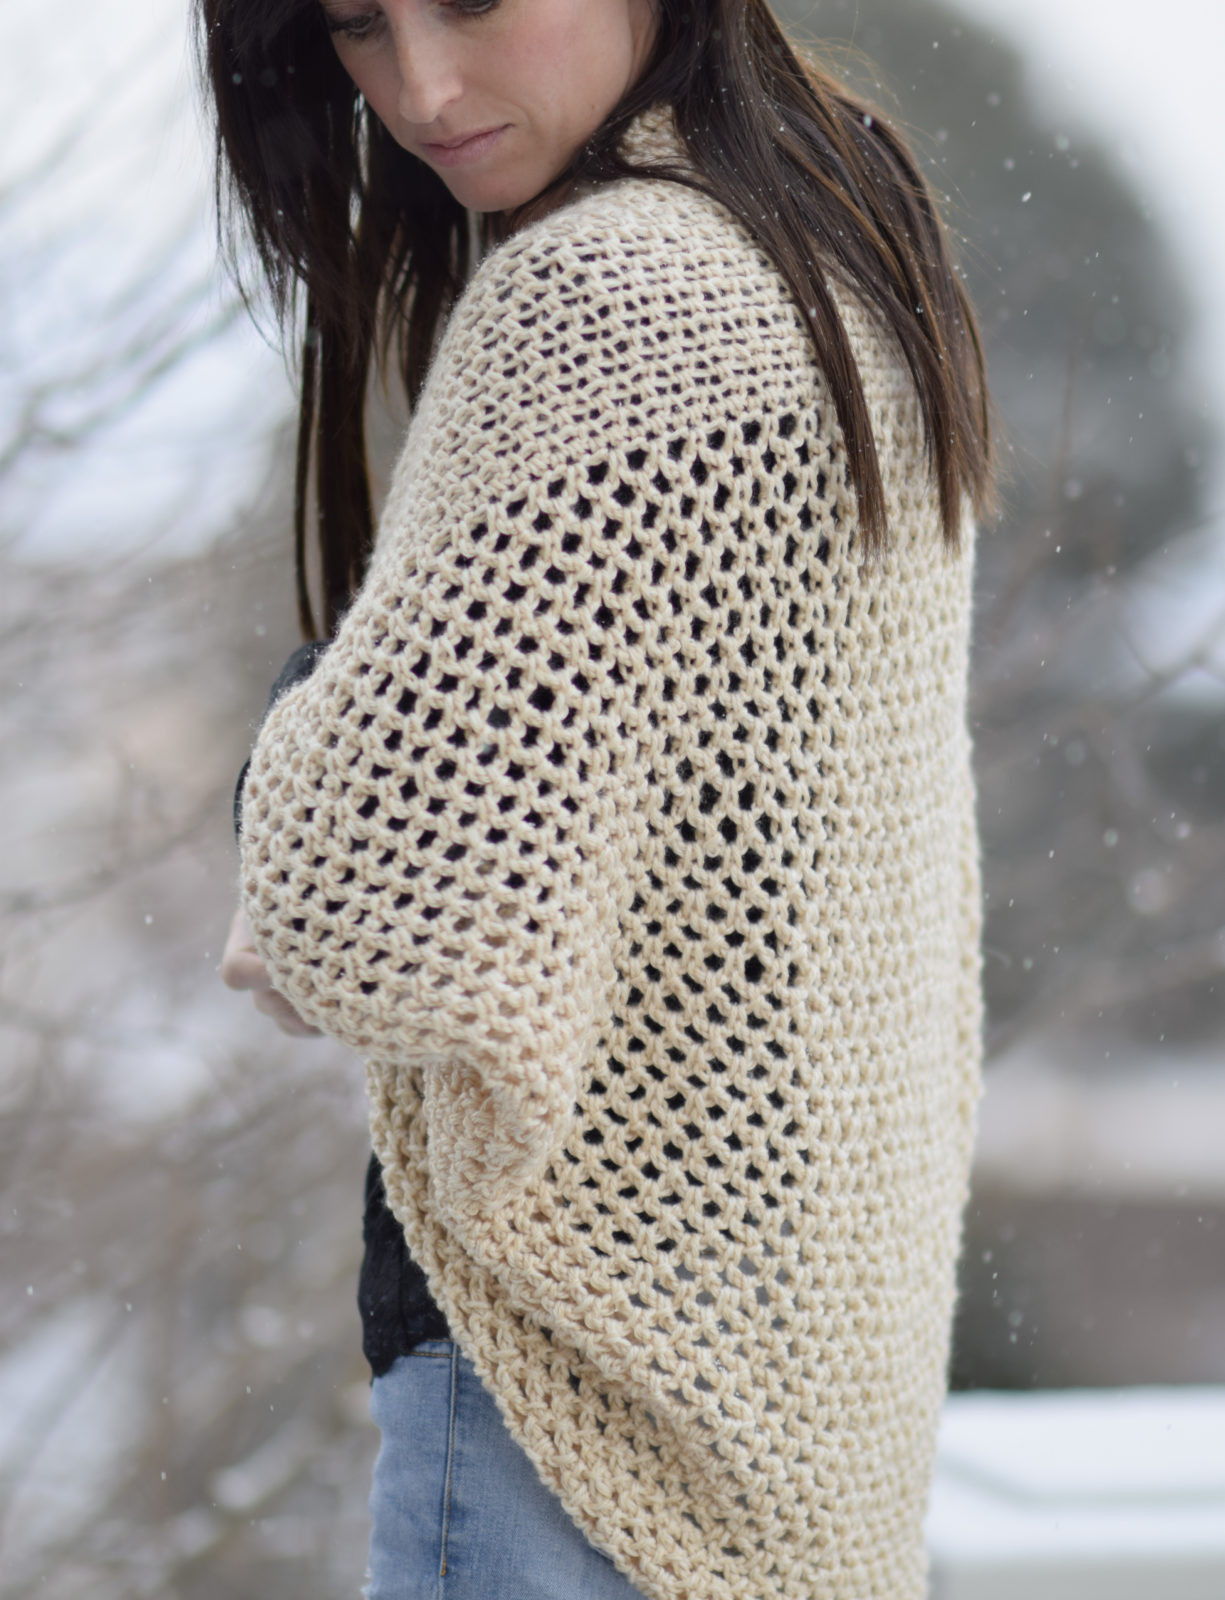 Crochet Pinterest New Mod Mesh Honey Blanket Sweater – Mama In A Stitch Of Brilliant 45 Pictures Crochet Pinterest